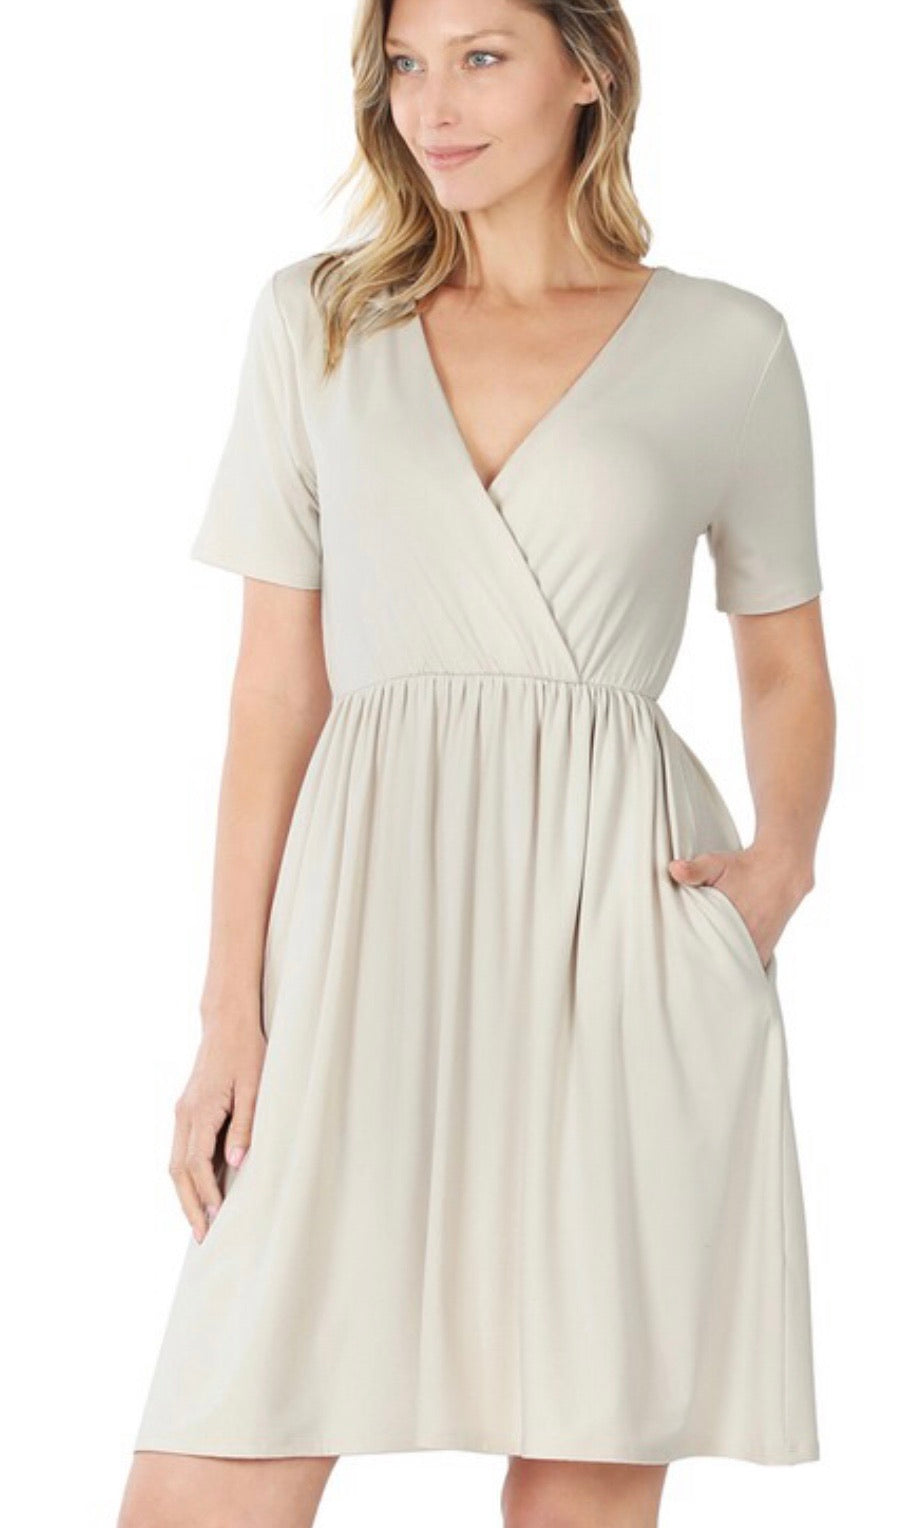 Light Beige Butter Soft Spring Dress